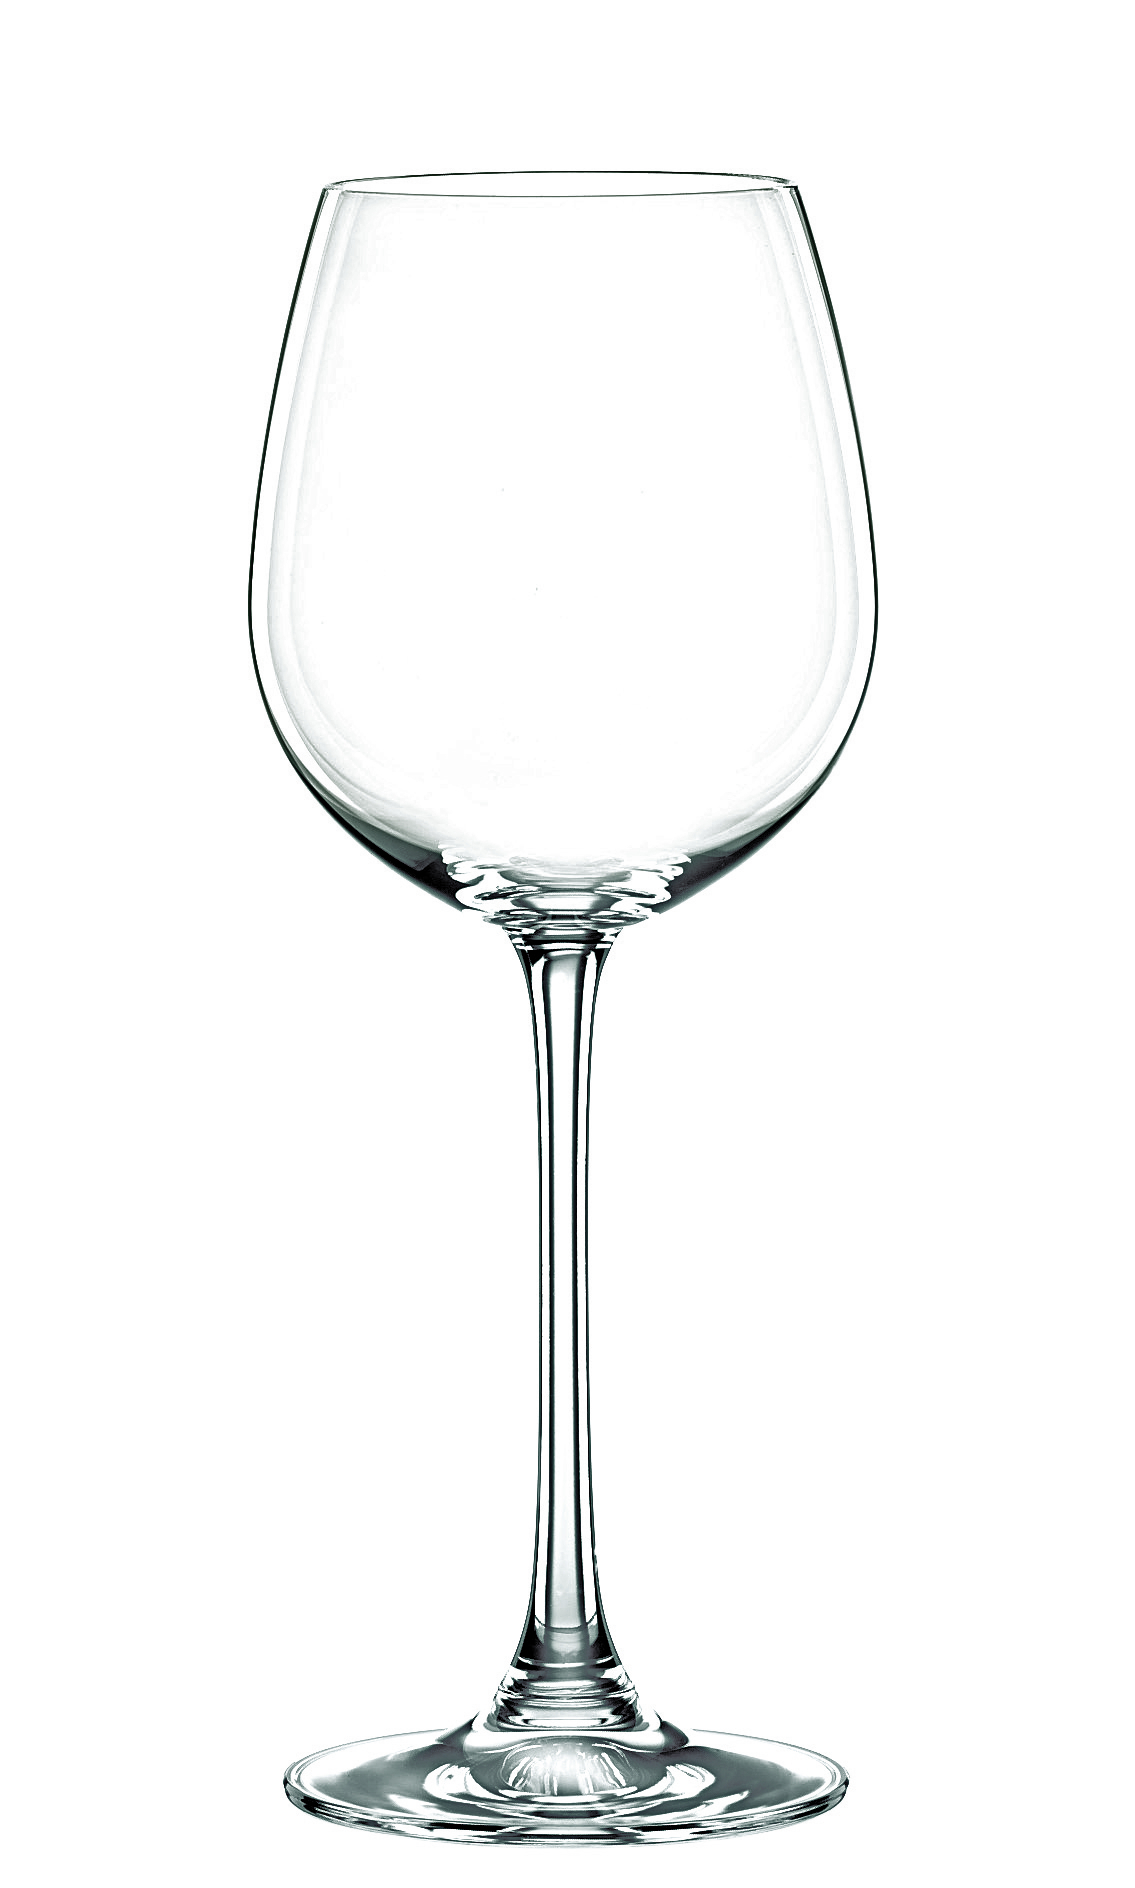 Nachtmann Vivendi White Wine Glasses, Set Of 4 by Riedel Glassworks